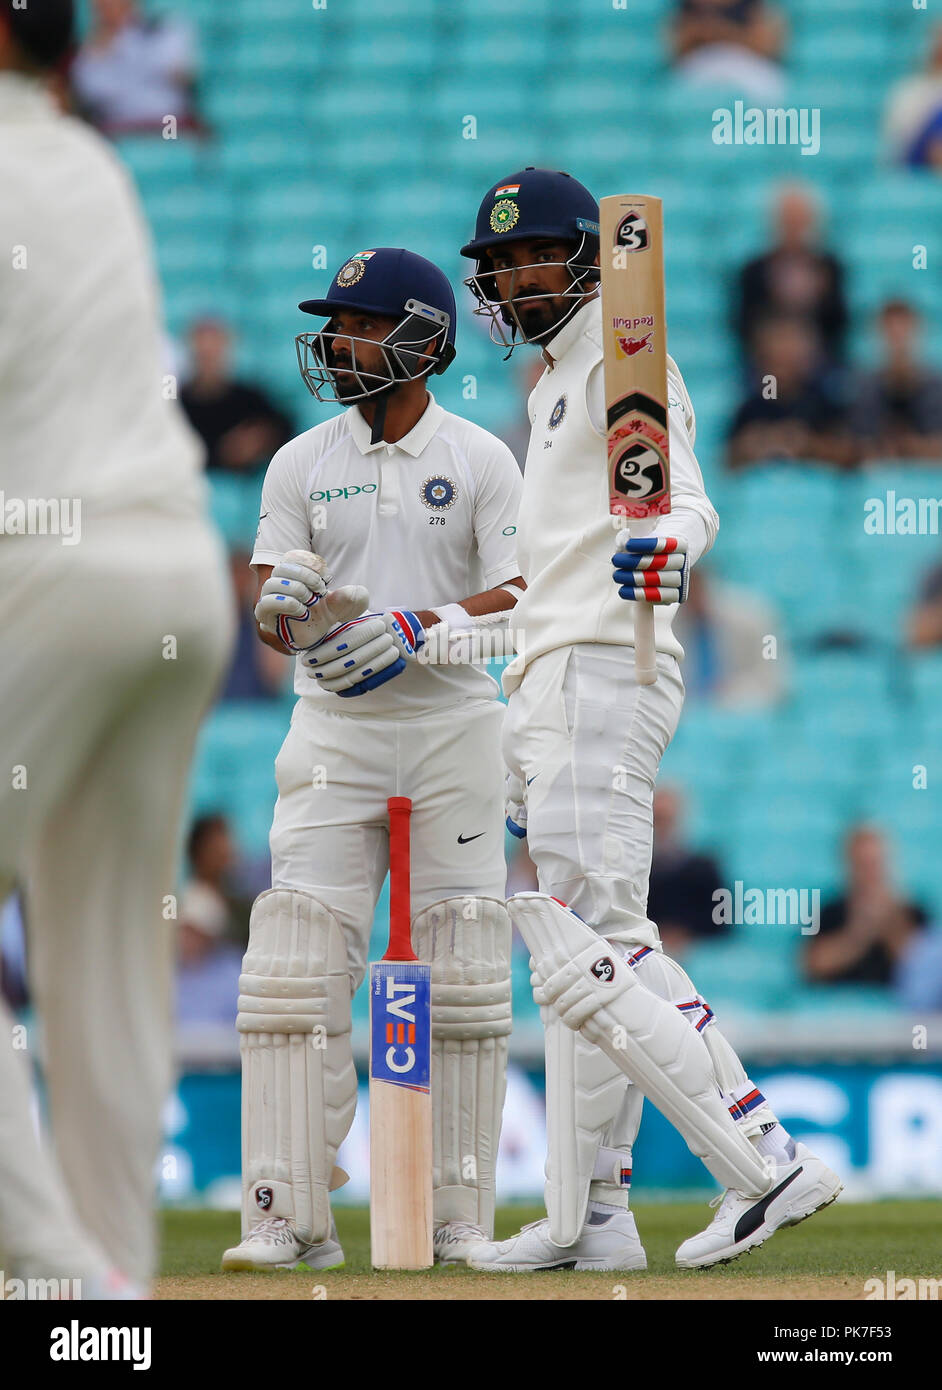 Kia Oval, London, UK. 11th Sep, 2018. Specsavers International Test Match Cricket, 5th test, day 5; KL Rahul of India acknowledges the Oval crowd's applause as he reaches his half century Credit: Action Plus Sports/Alamy Live News - Stock Image